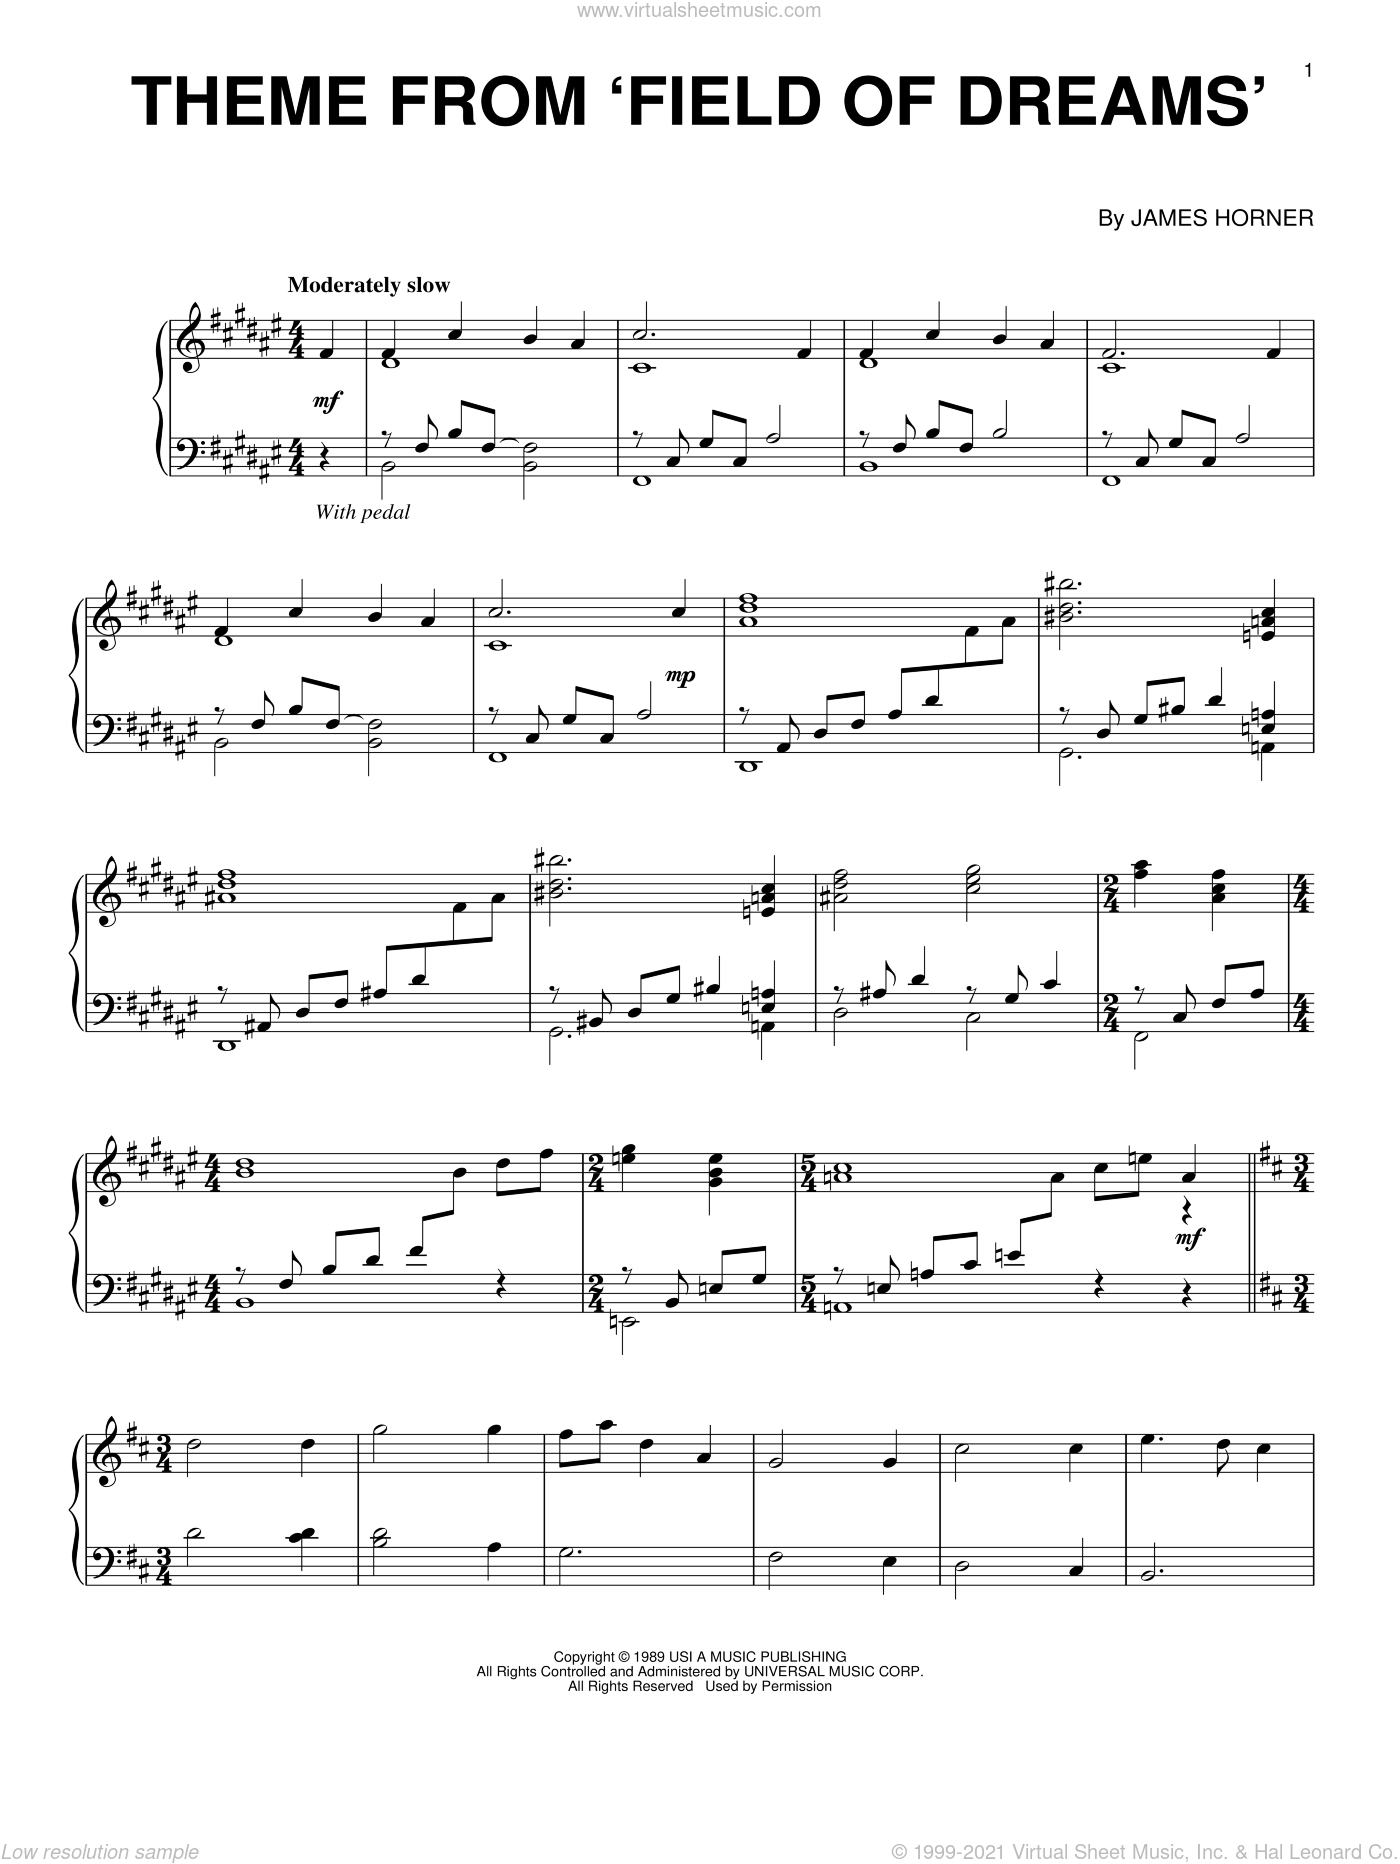 Theme From Field Of Dreams sheet music for piano solo by James Horner. Score Image Preview.